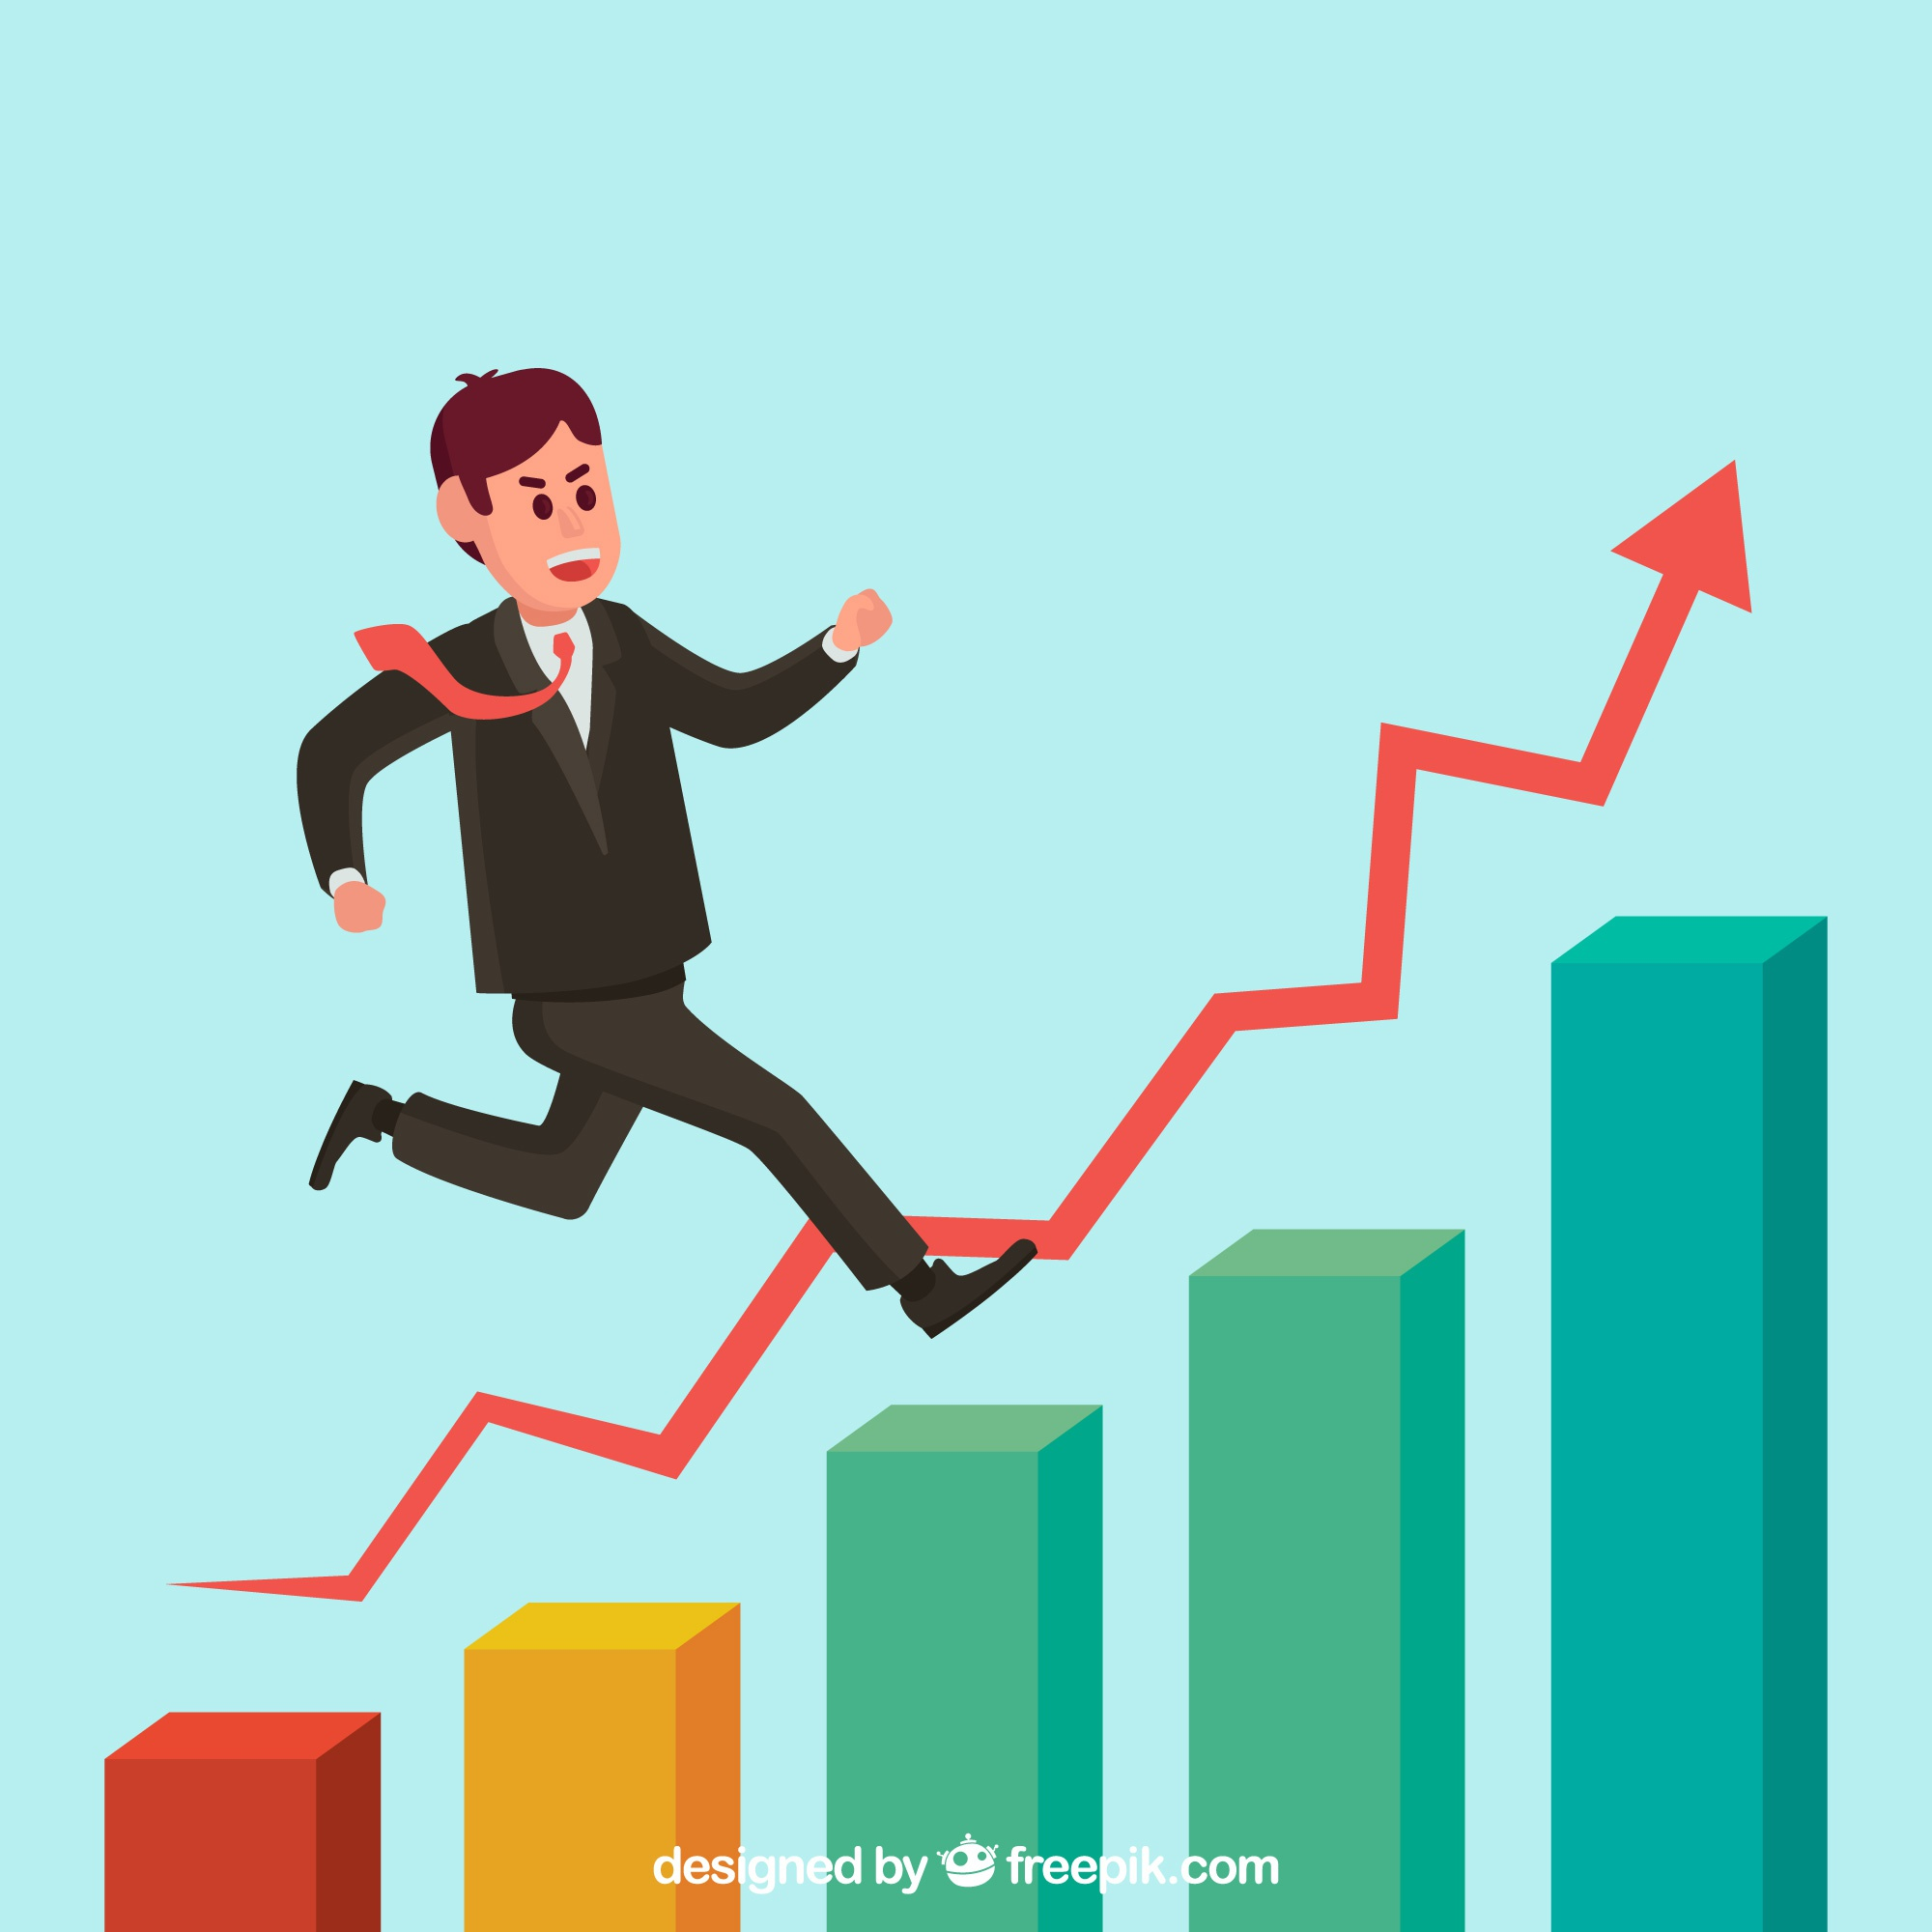 Entrepreneur on top of a growth chart